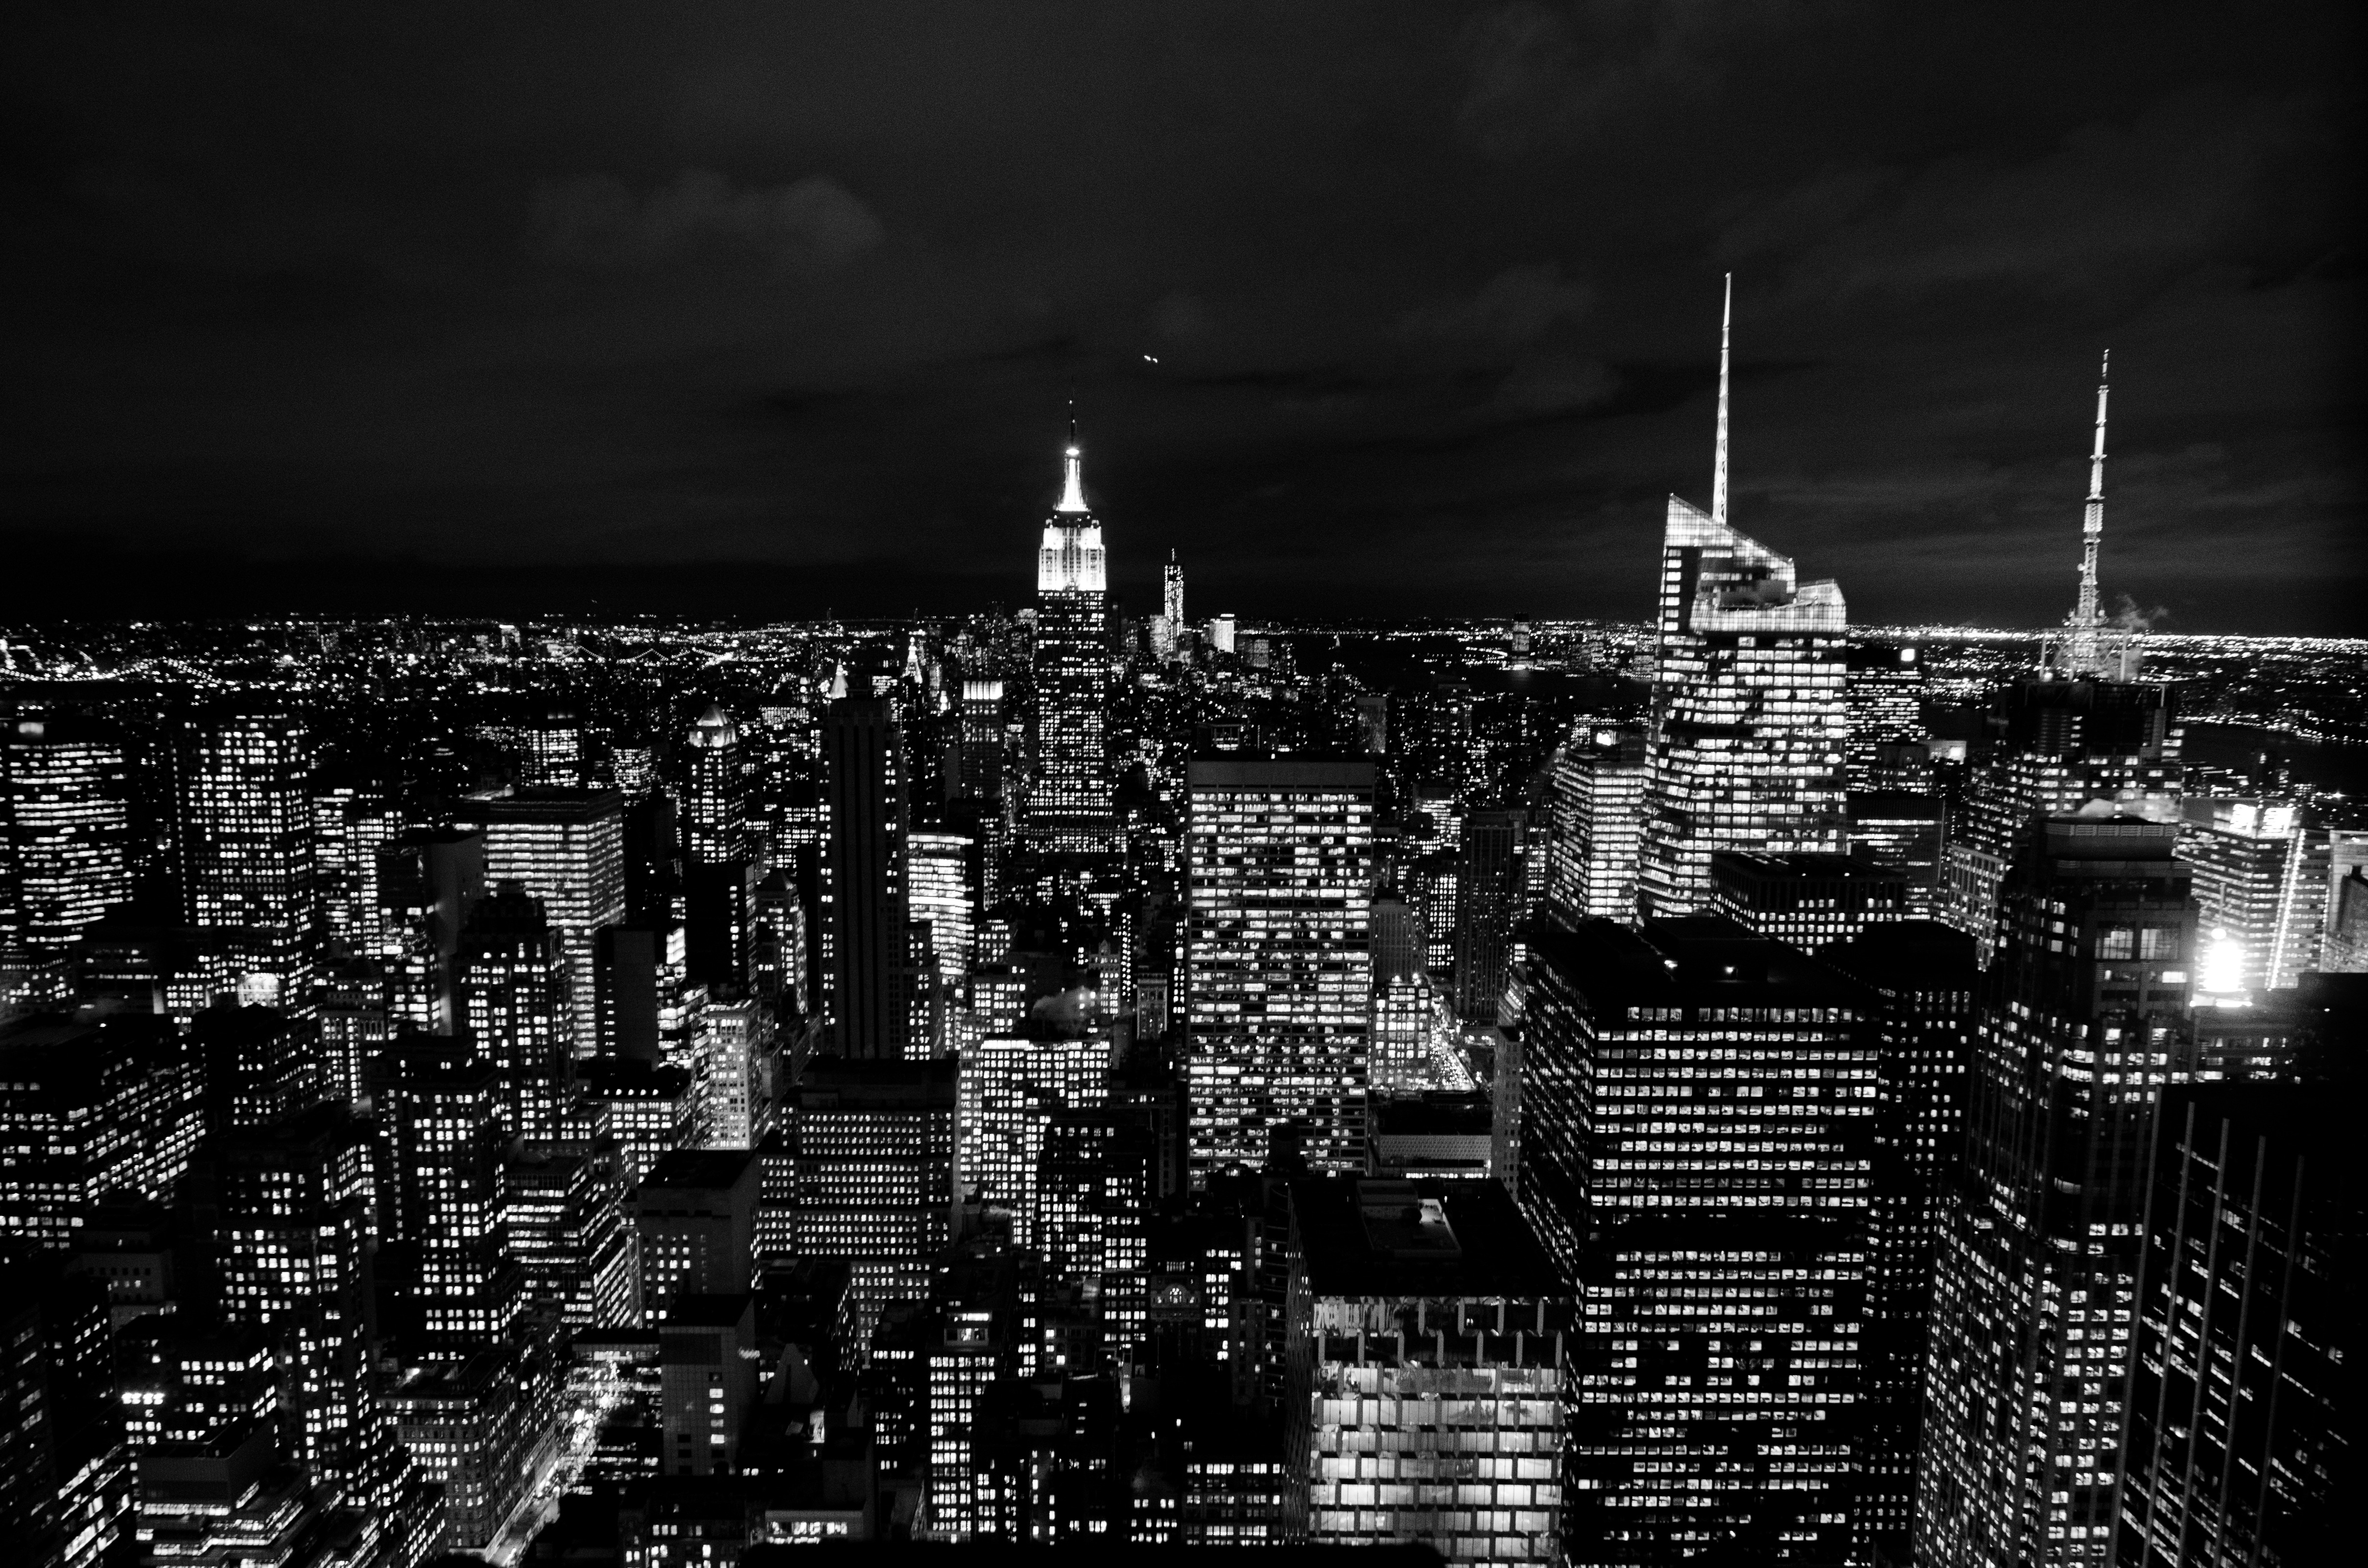 New york at night, new york, new york lights, building lights, light, night, windows, buildings, black and white, new york, lights, light, night